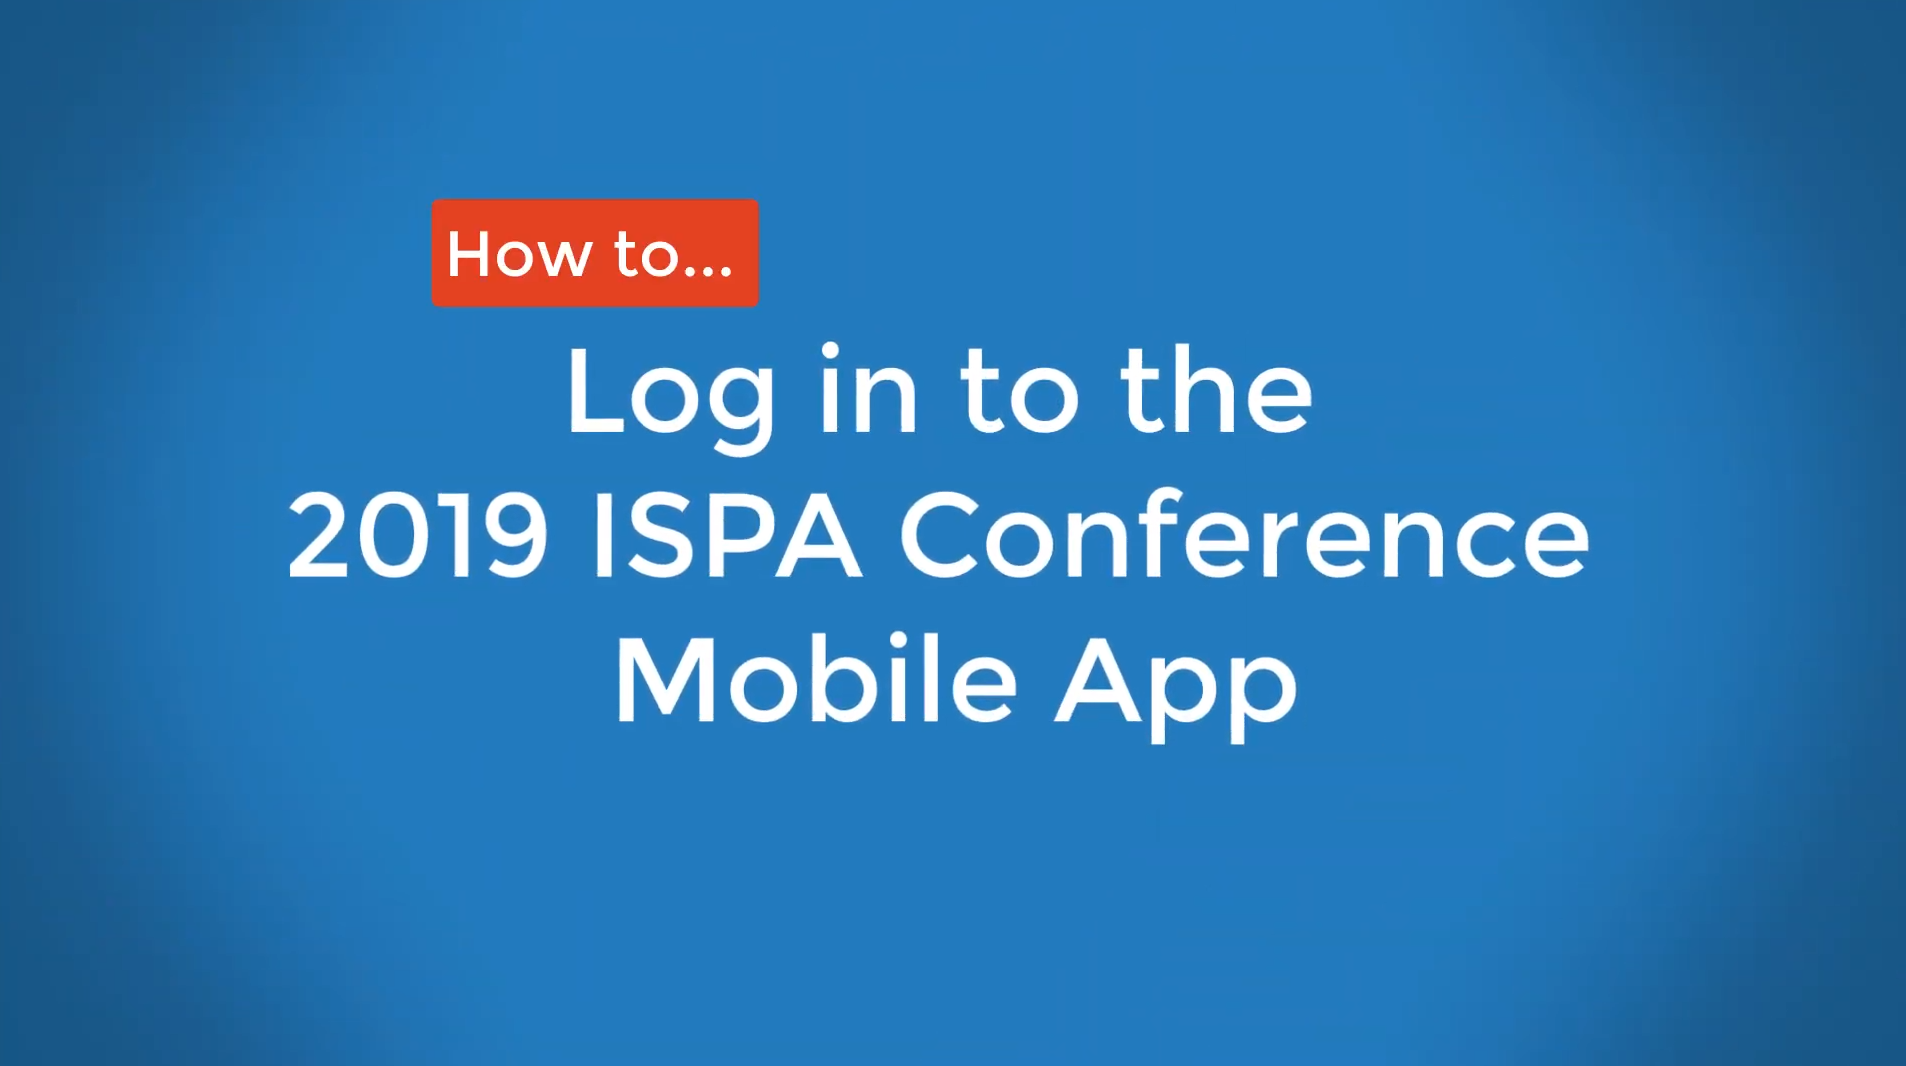 VIDEO: How to Log in to the 2019 ISPA Conference Mobile App